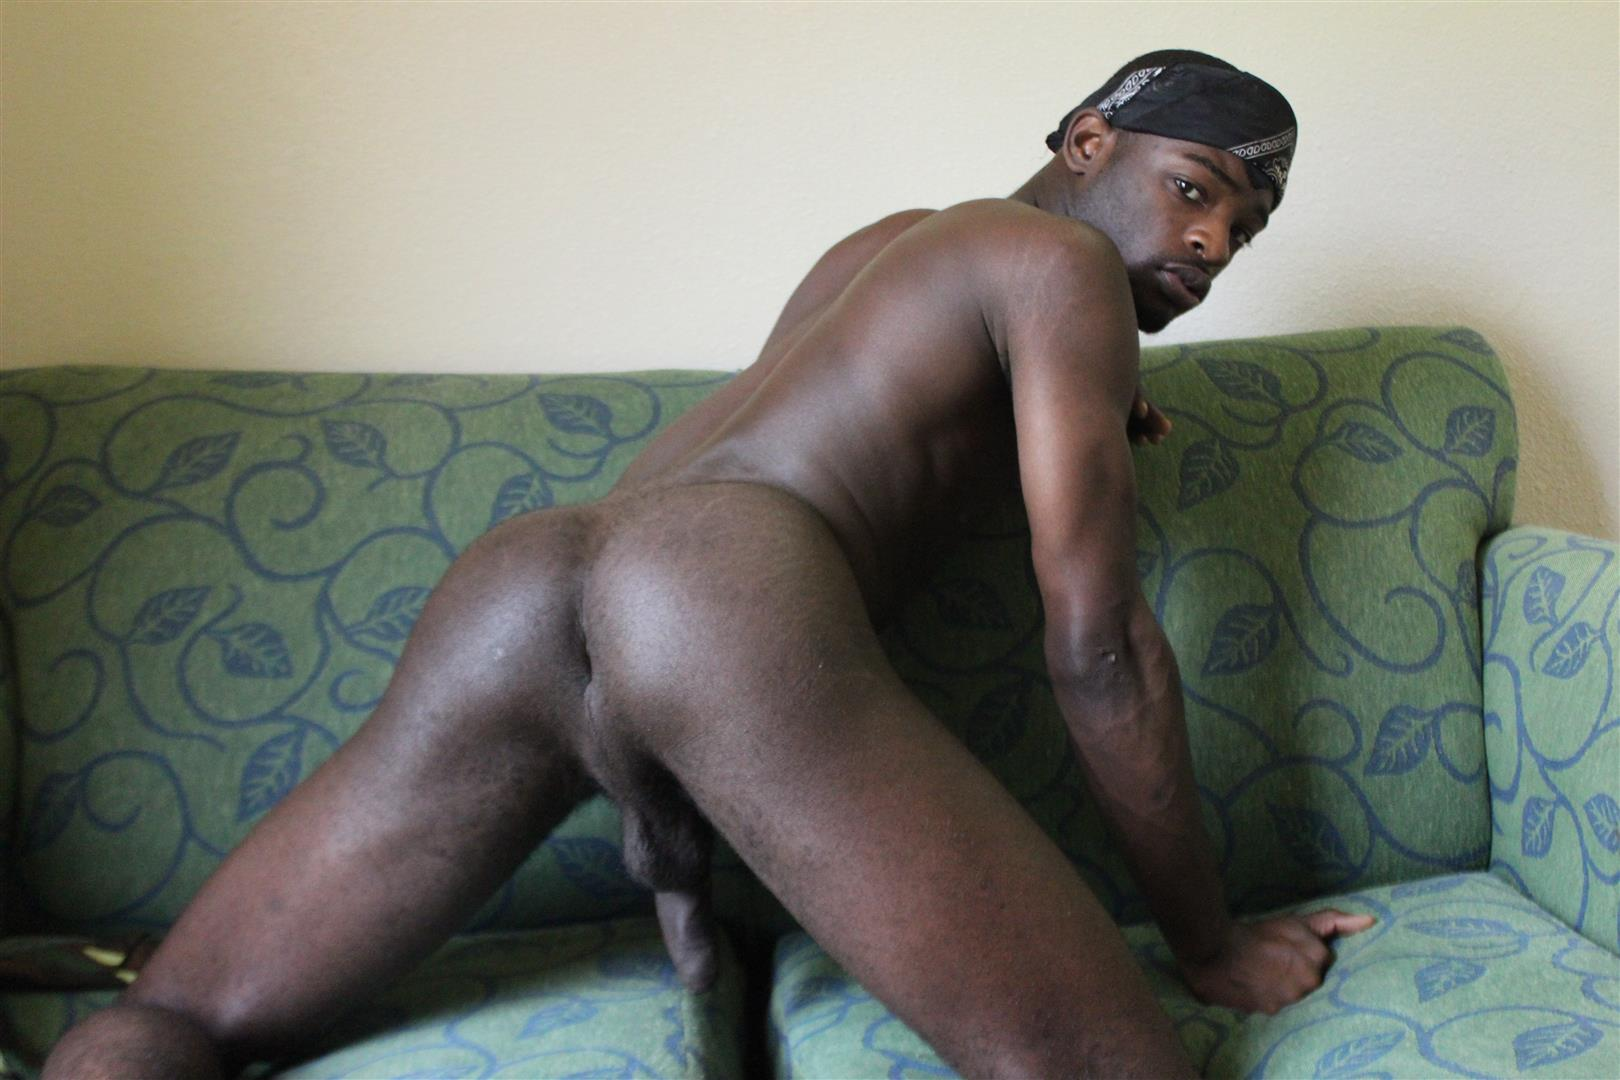 Traphouse Boys Brown and Carlos Big Black Cock Bareback Amateur Gay Porn 03 DL Thugs Barebacking With Their Big Uncut Black Dicks